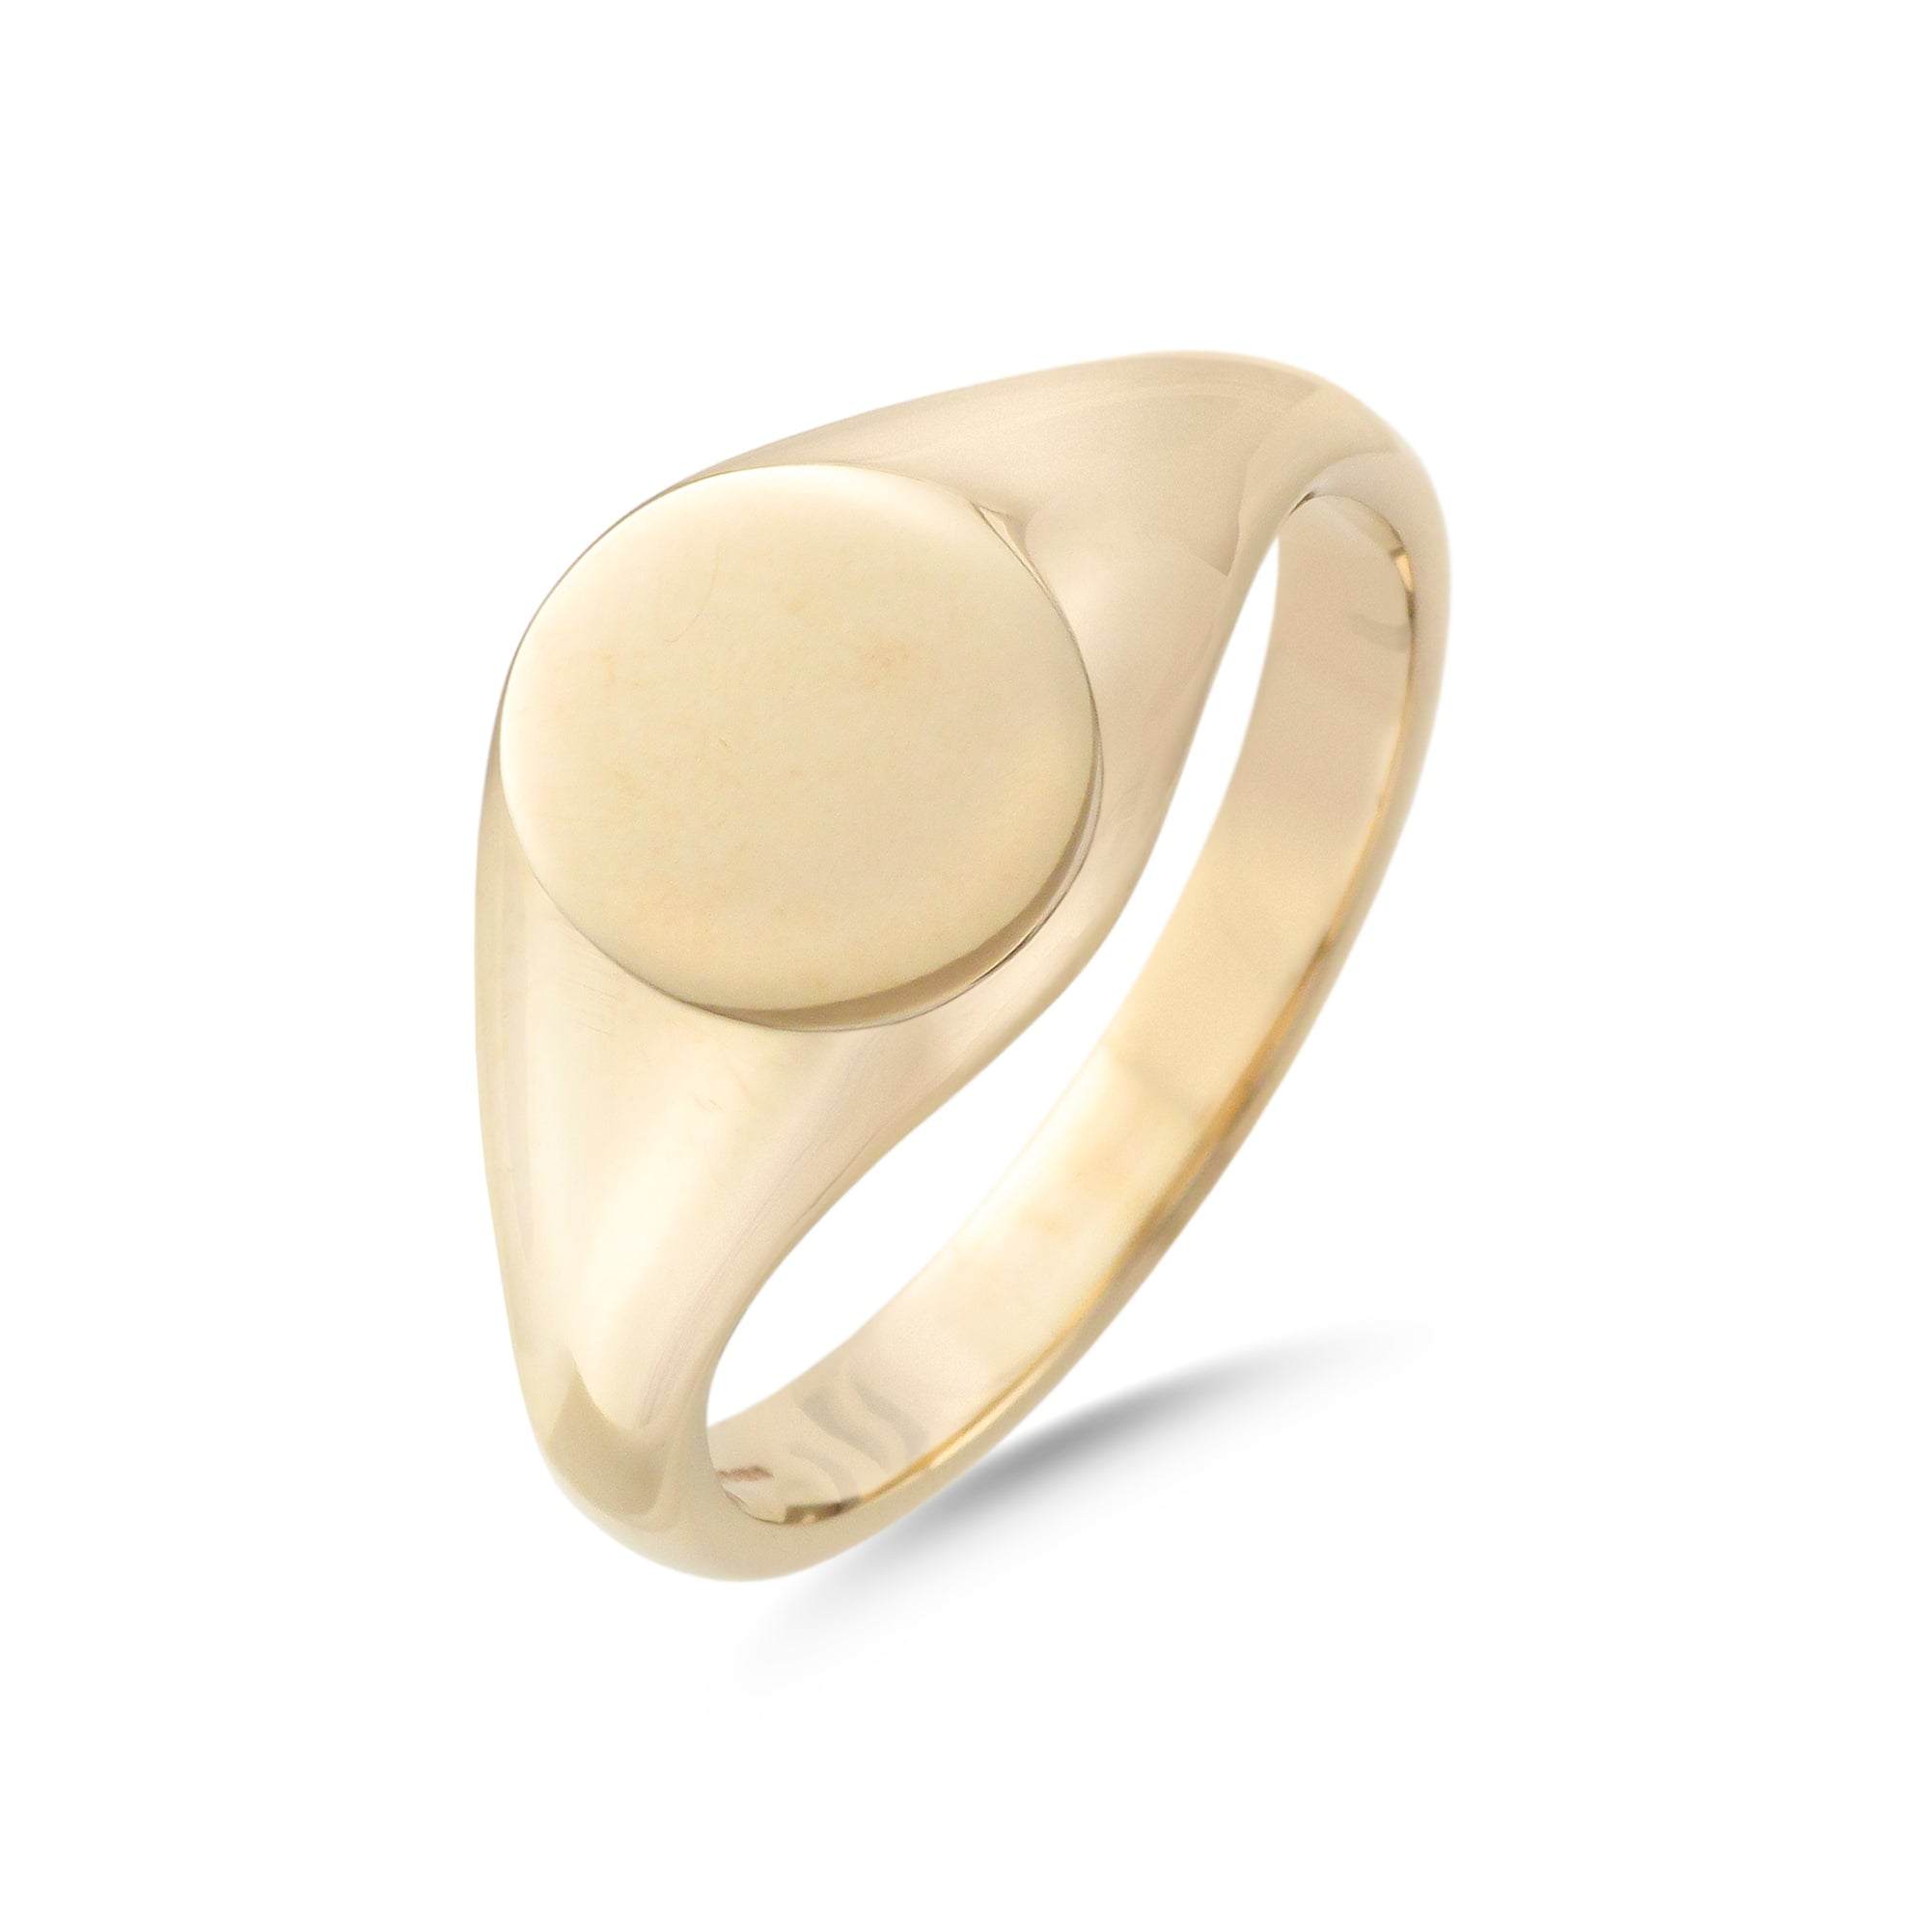 9ct Yellow Gold Oval Signet Ring 11mm x 9mm